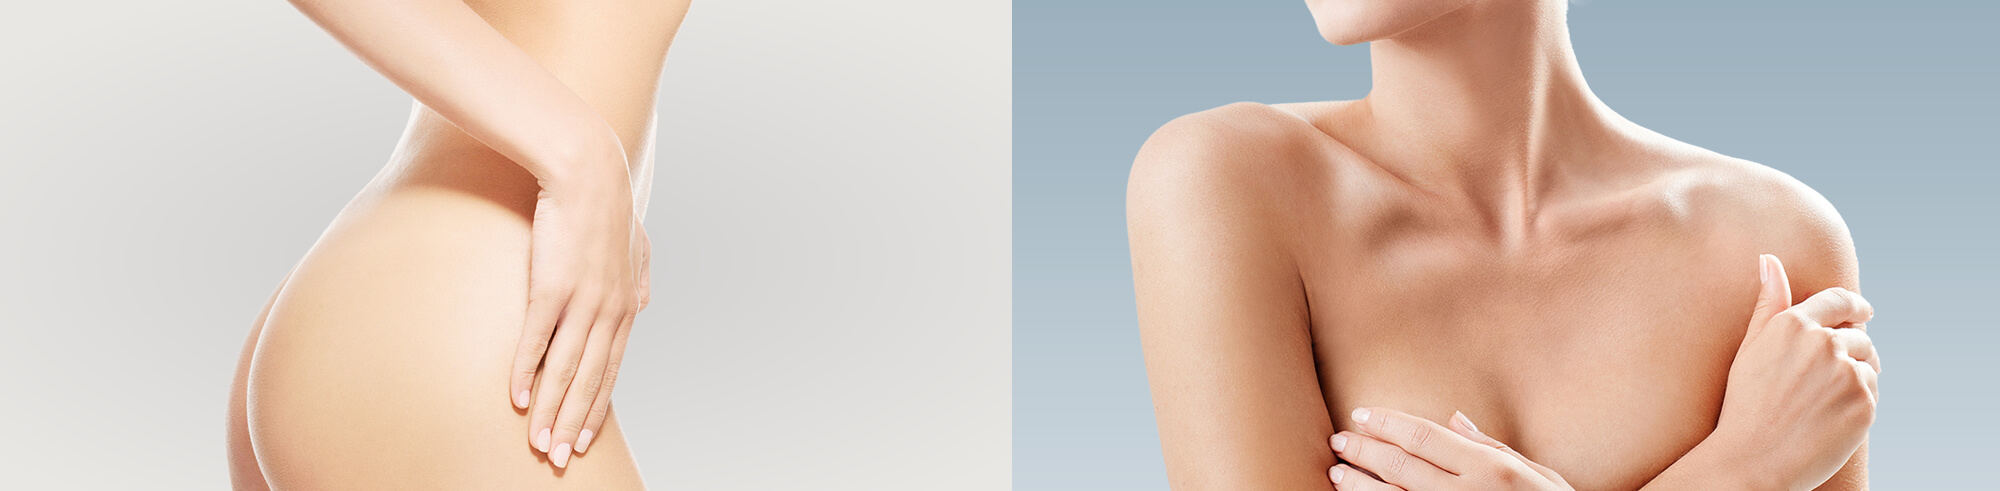 Minimally Invasive Liposuction